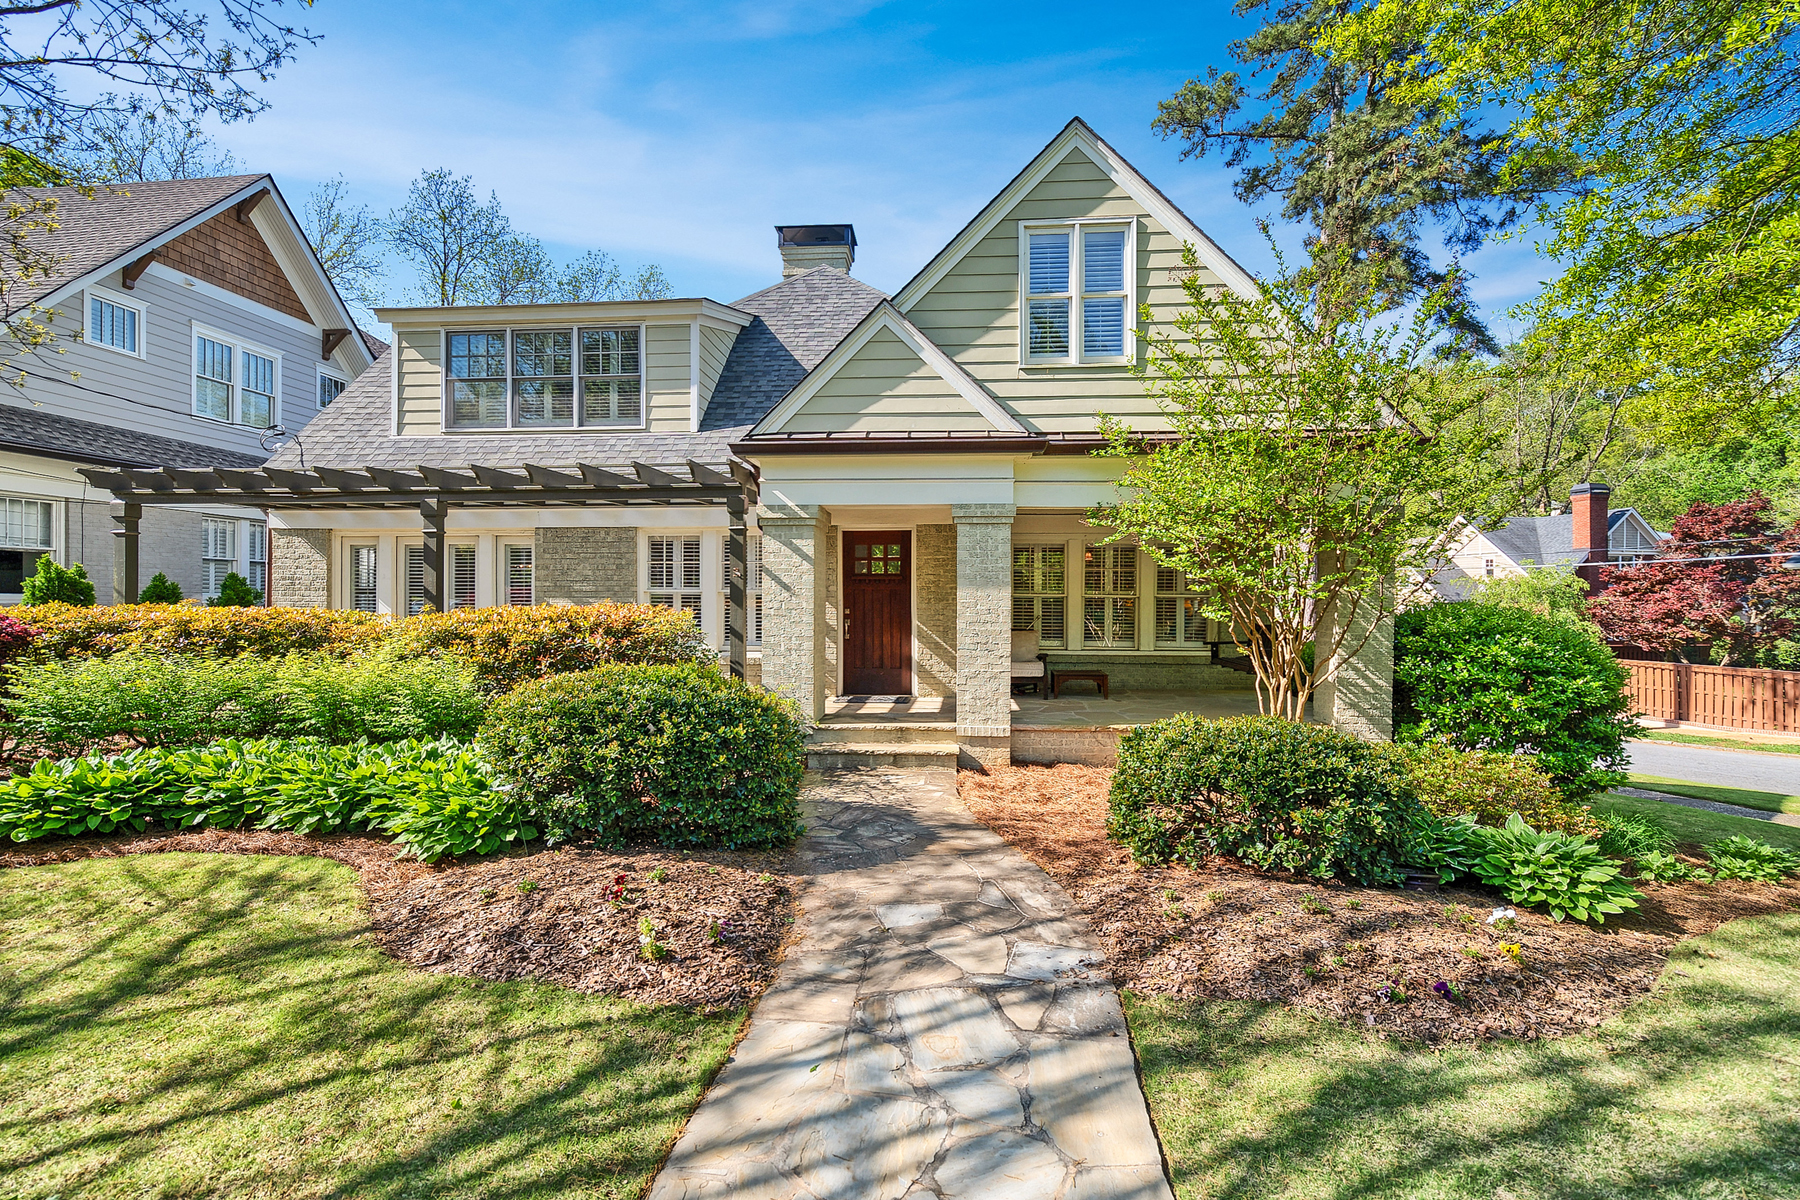 Single Family Home for Sale at Fantastic Total Renovation/Expansion In The Heart Of Morningside 1284 N Morningside Drive NE Atlanta, Georgia 30306 United States